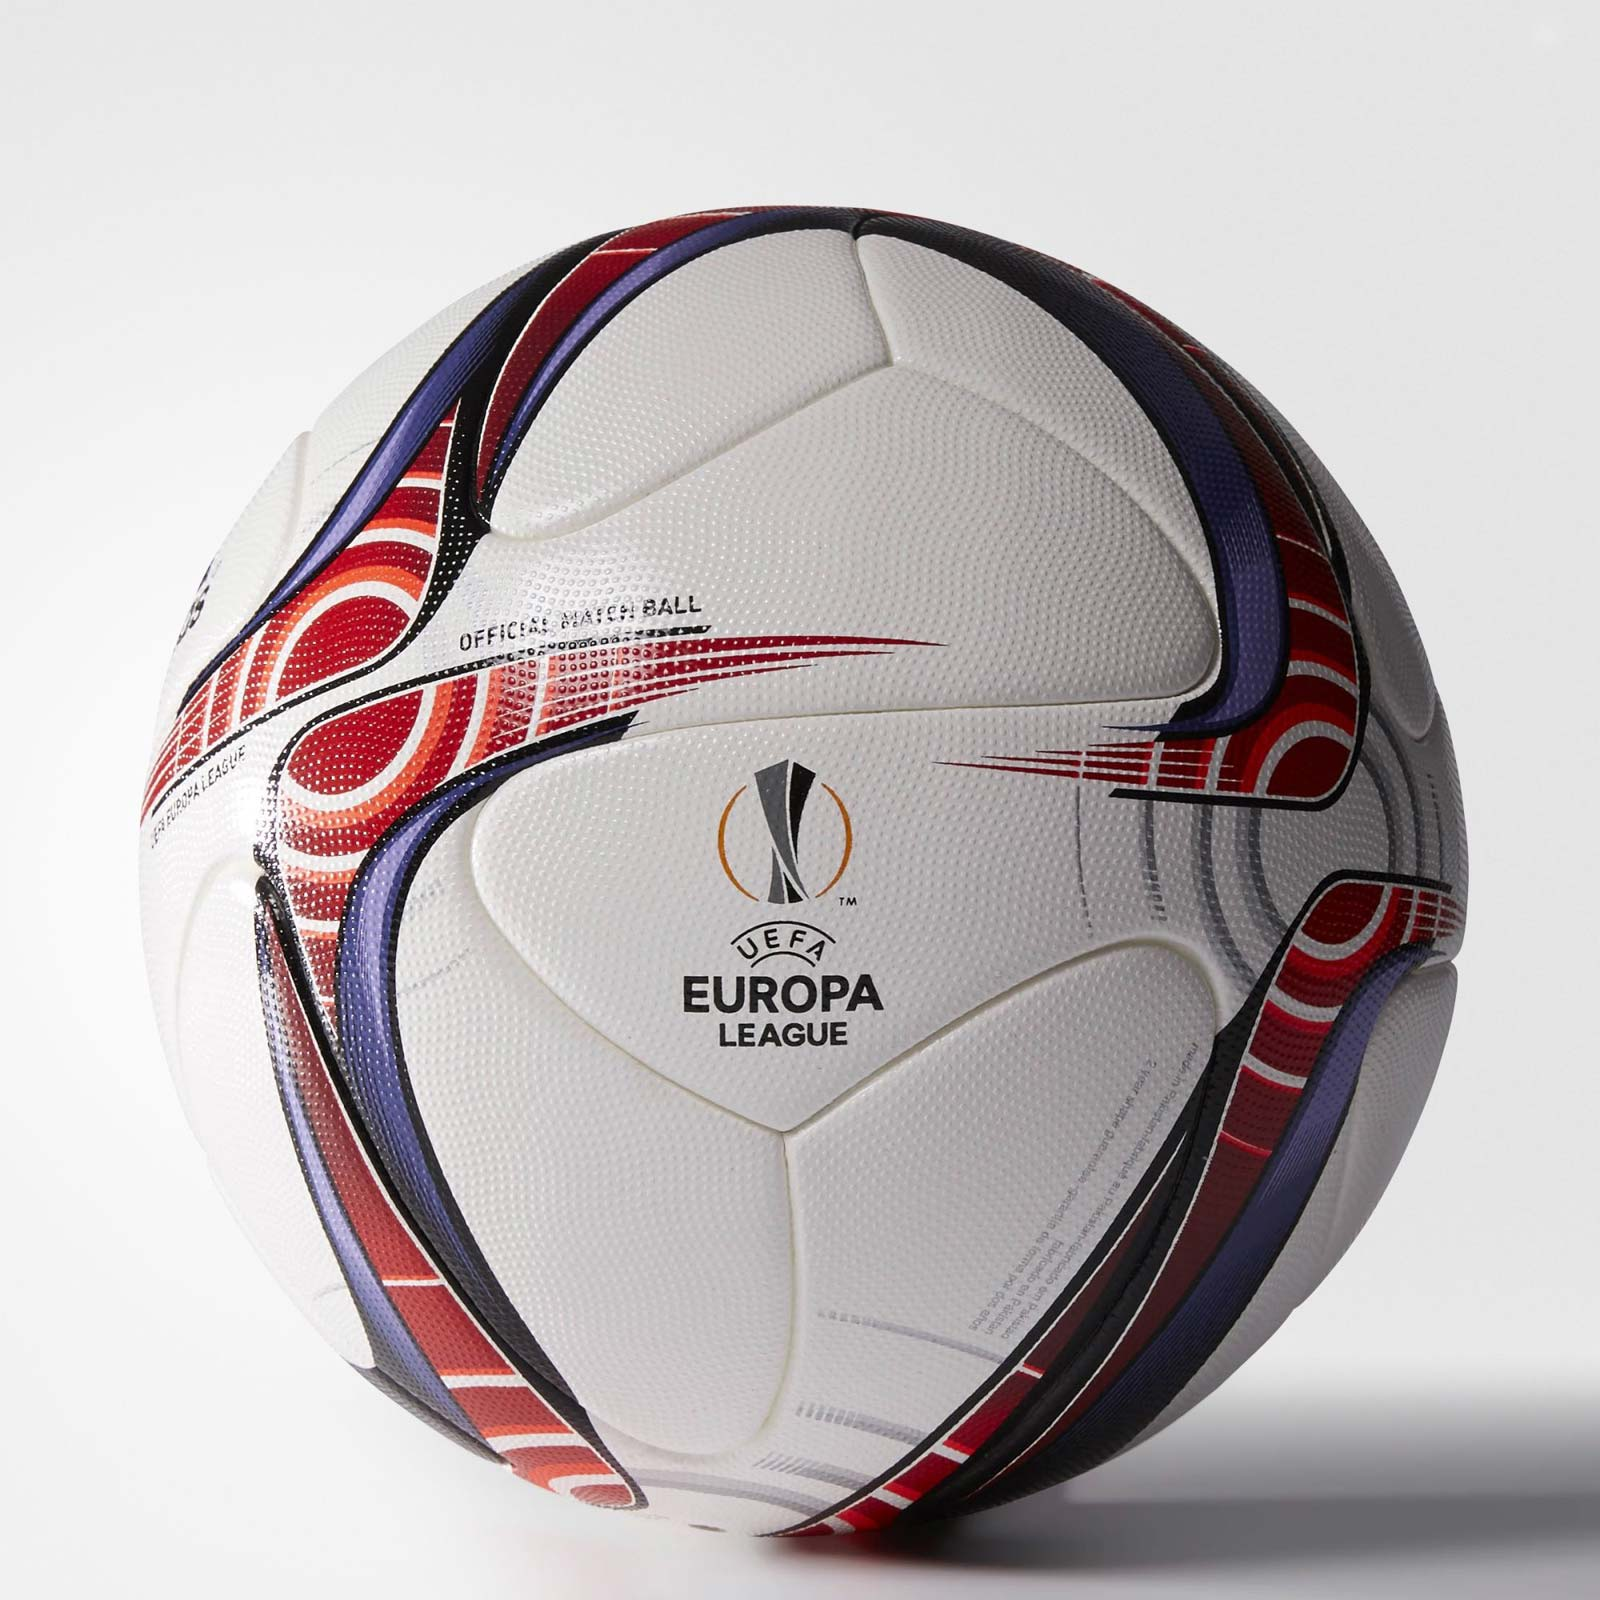 ... is the new Adidas 2016-2016 UEFA Europa League Official Match Ball